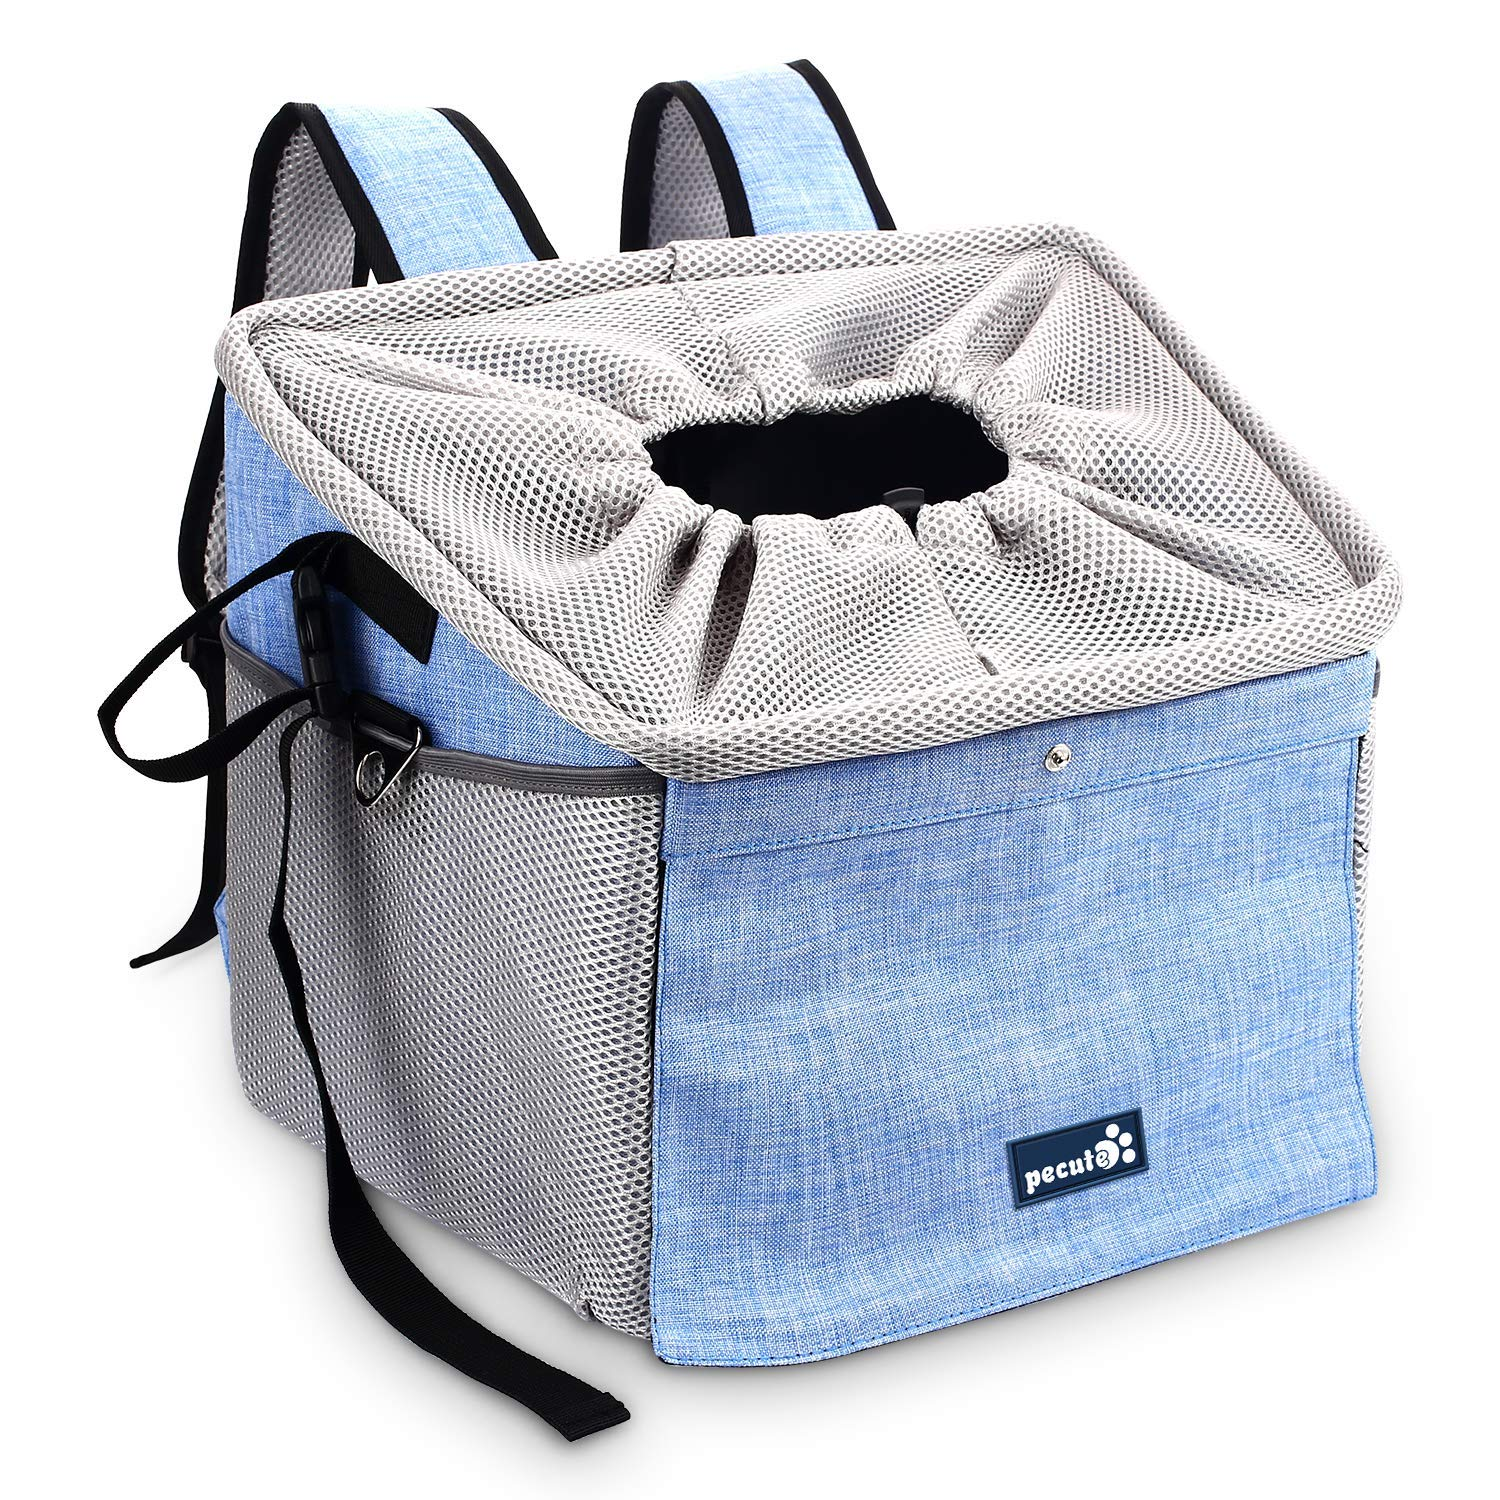 Pecute Dog Bike Basket Pet Carrier Bicycle, Dog Booster Car Seat Pet Booster Seat with 2 Big Side Pockets, Comfy & Padded Shoulder Strap, Portable Breathable Pet Carrier, Travel with Your Pet by Pecute